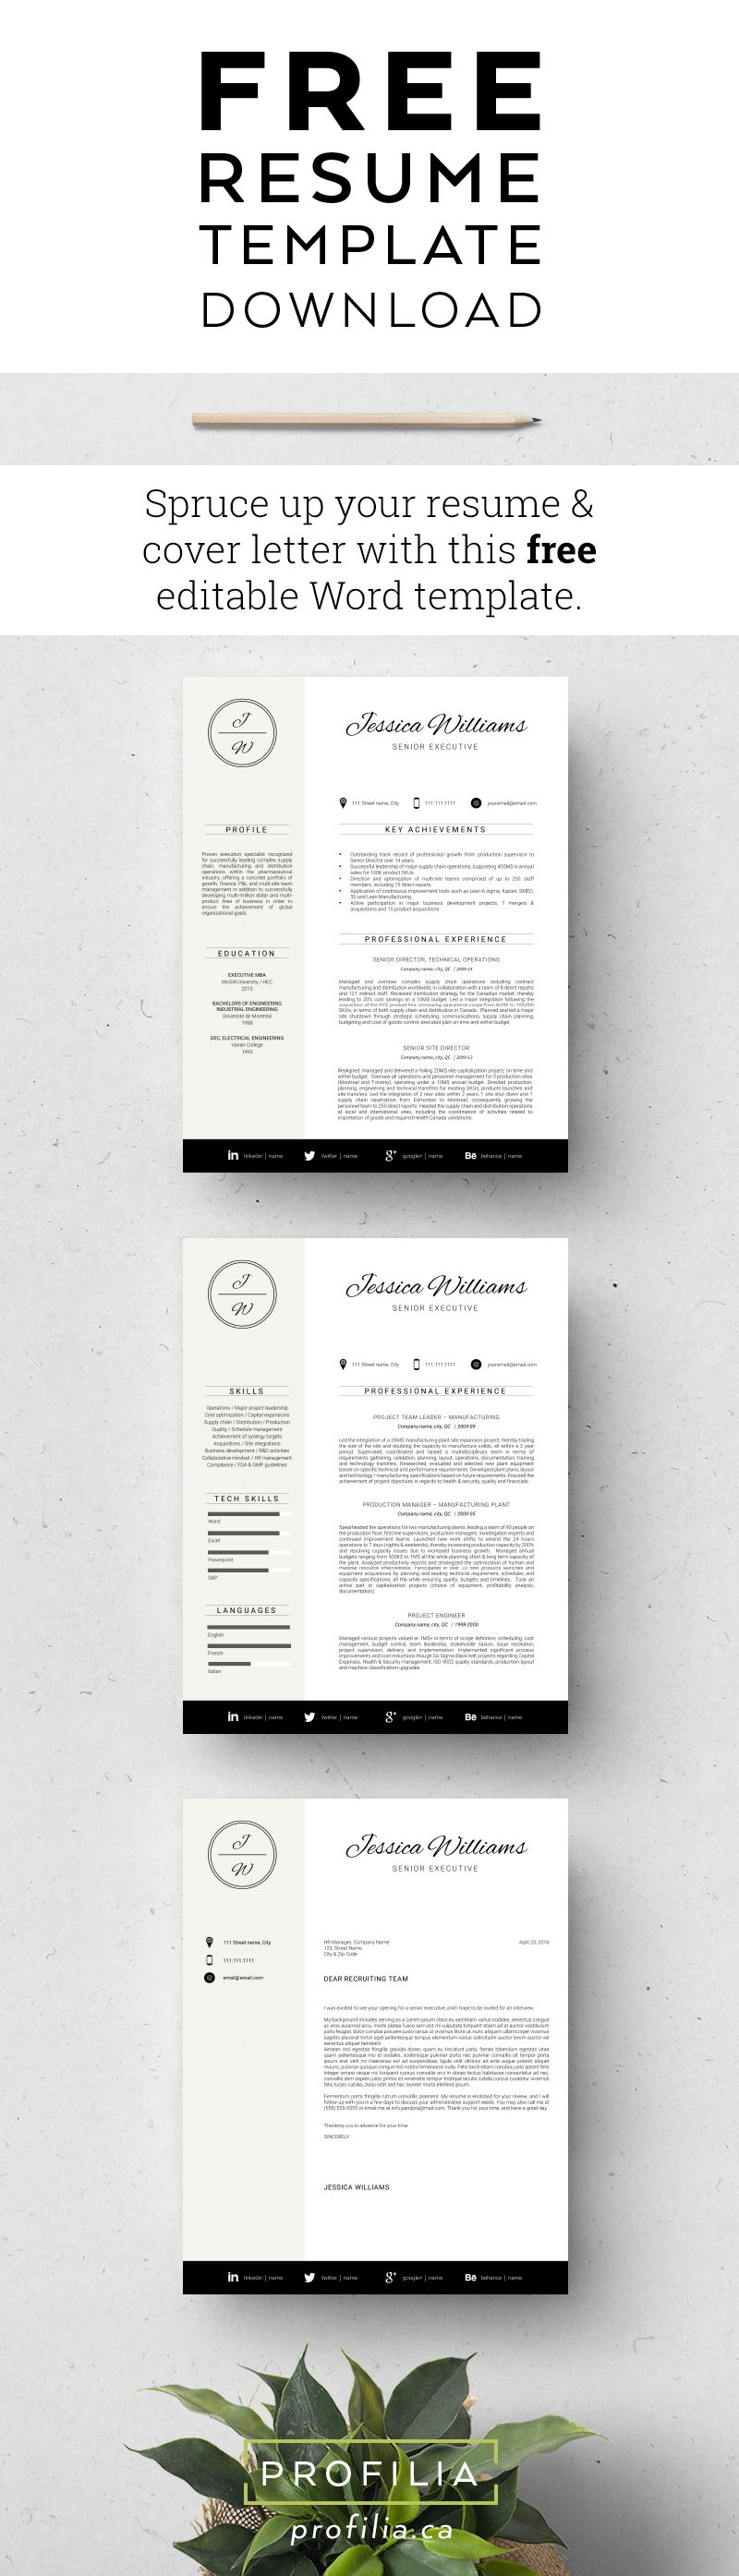 Free Resume Template  Refresh Your Job Search With This Free Resume